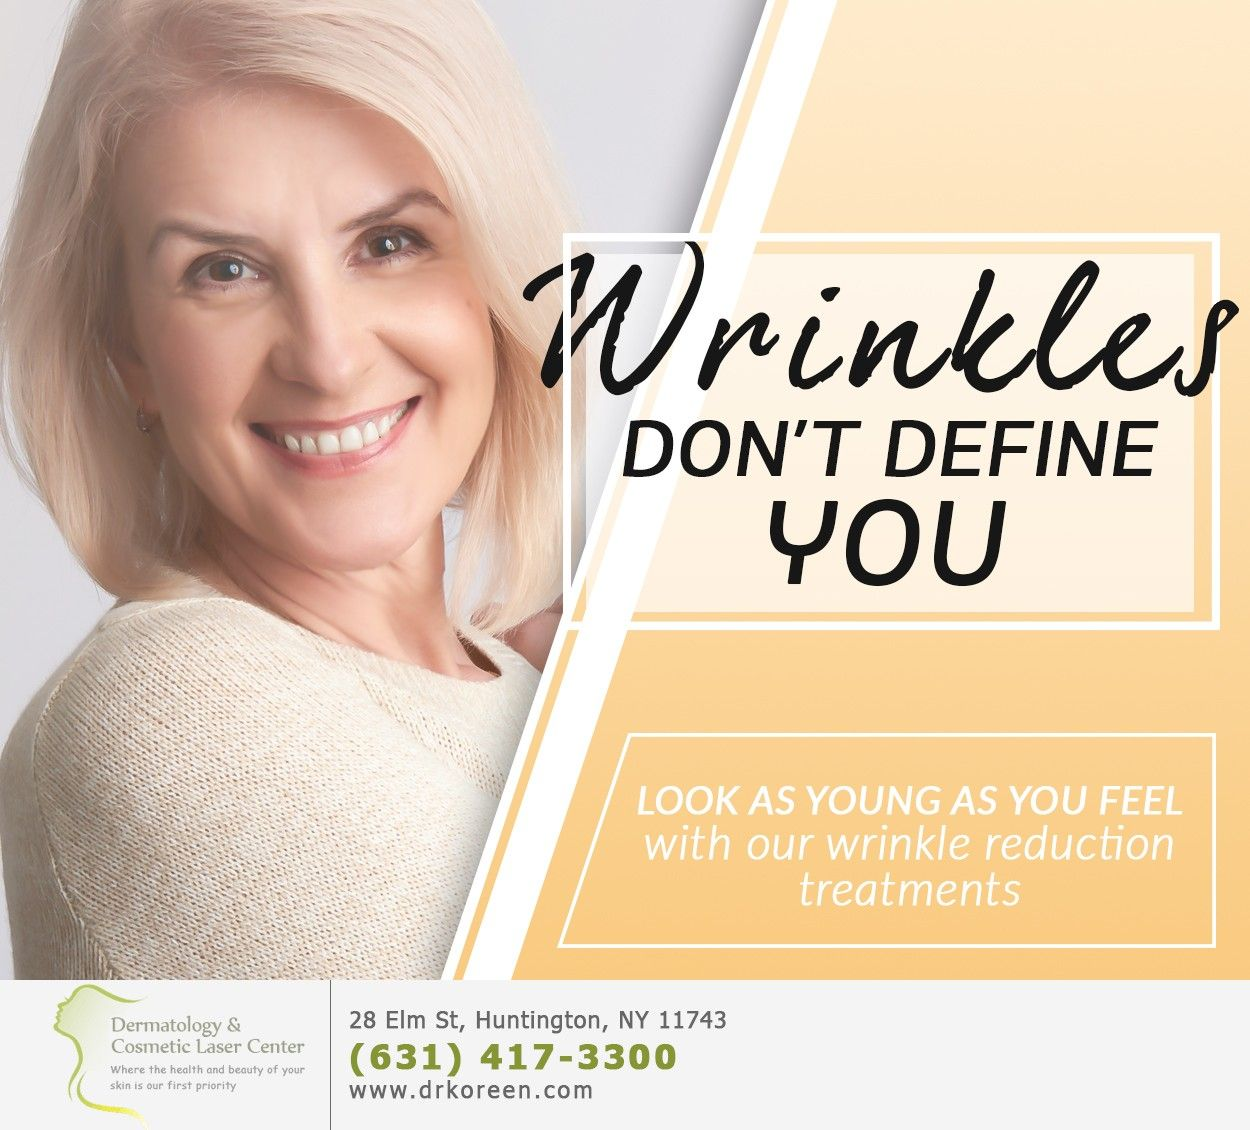 Wrinkles May Appear Way Too Early But You Can T Go Back And Change Your Skincare Practices Now What You Can Do Is Dermal Fillers Wrinkle Reduction Treatment